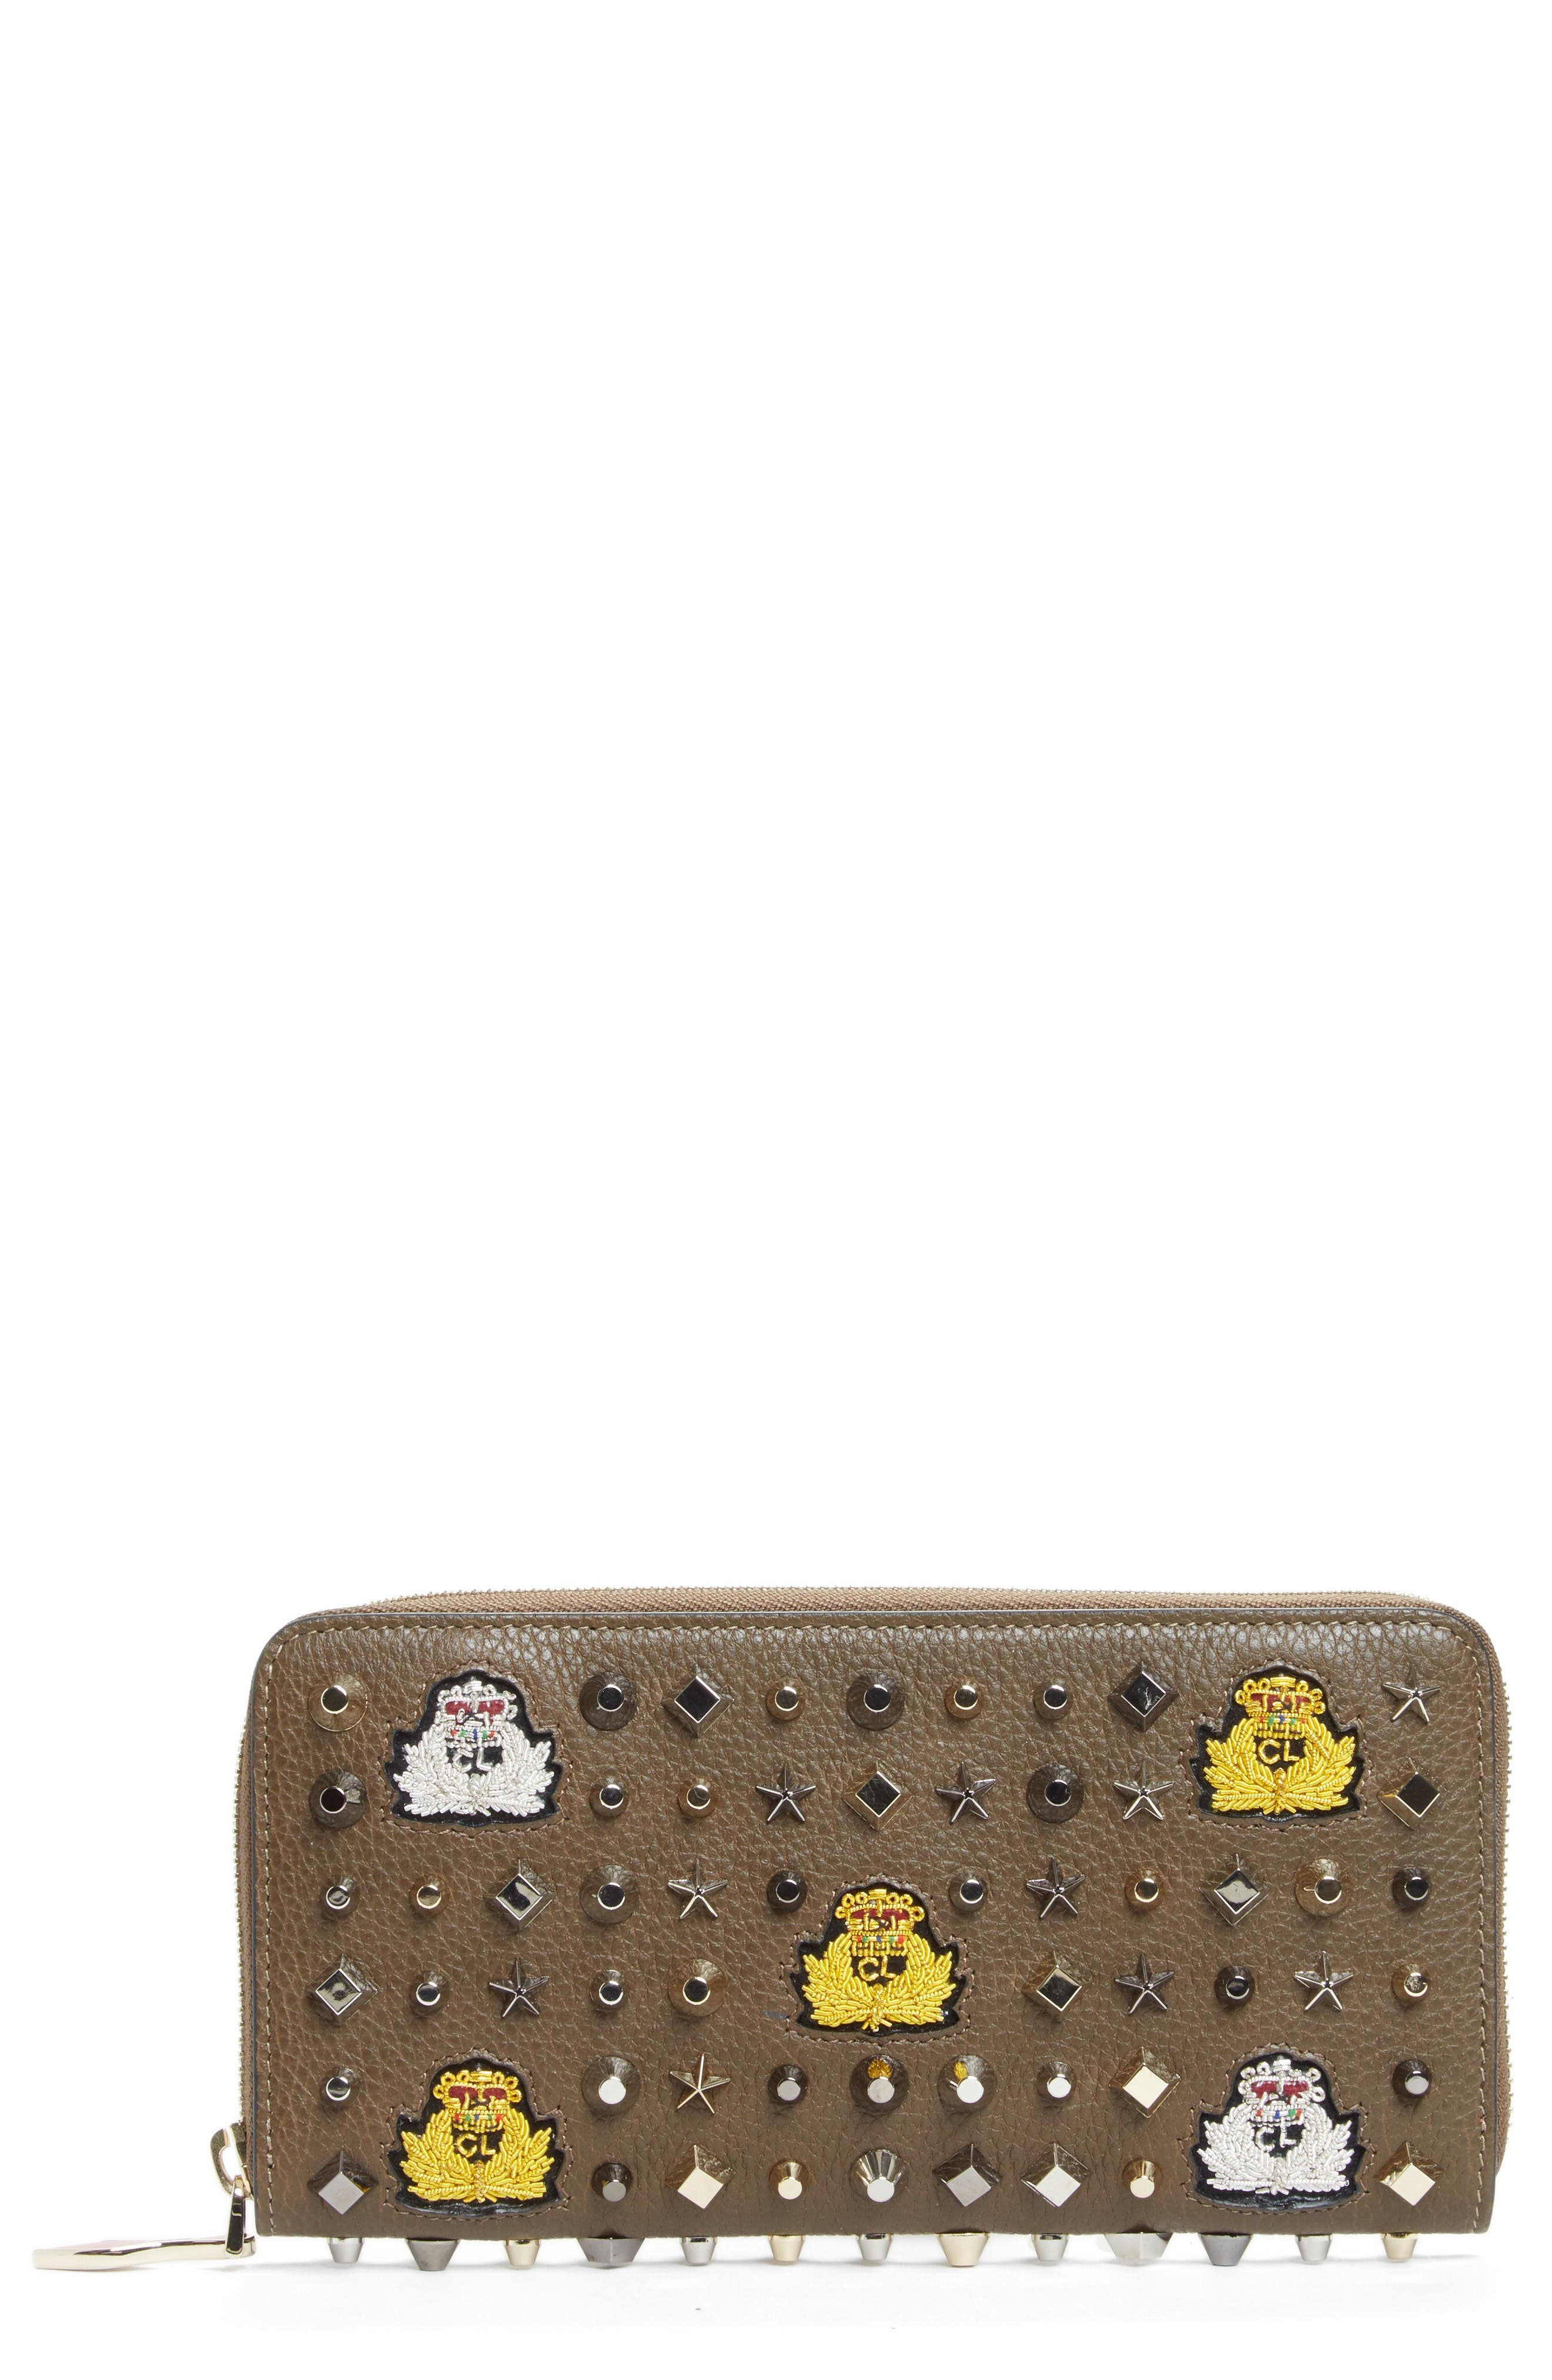 Christian Louboutin Panettone - Loubacademy Leather Wallet